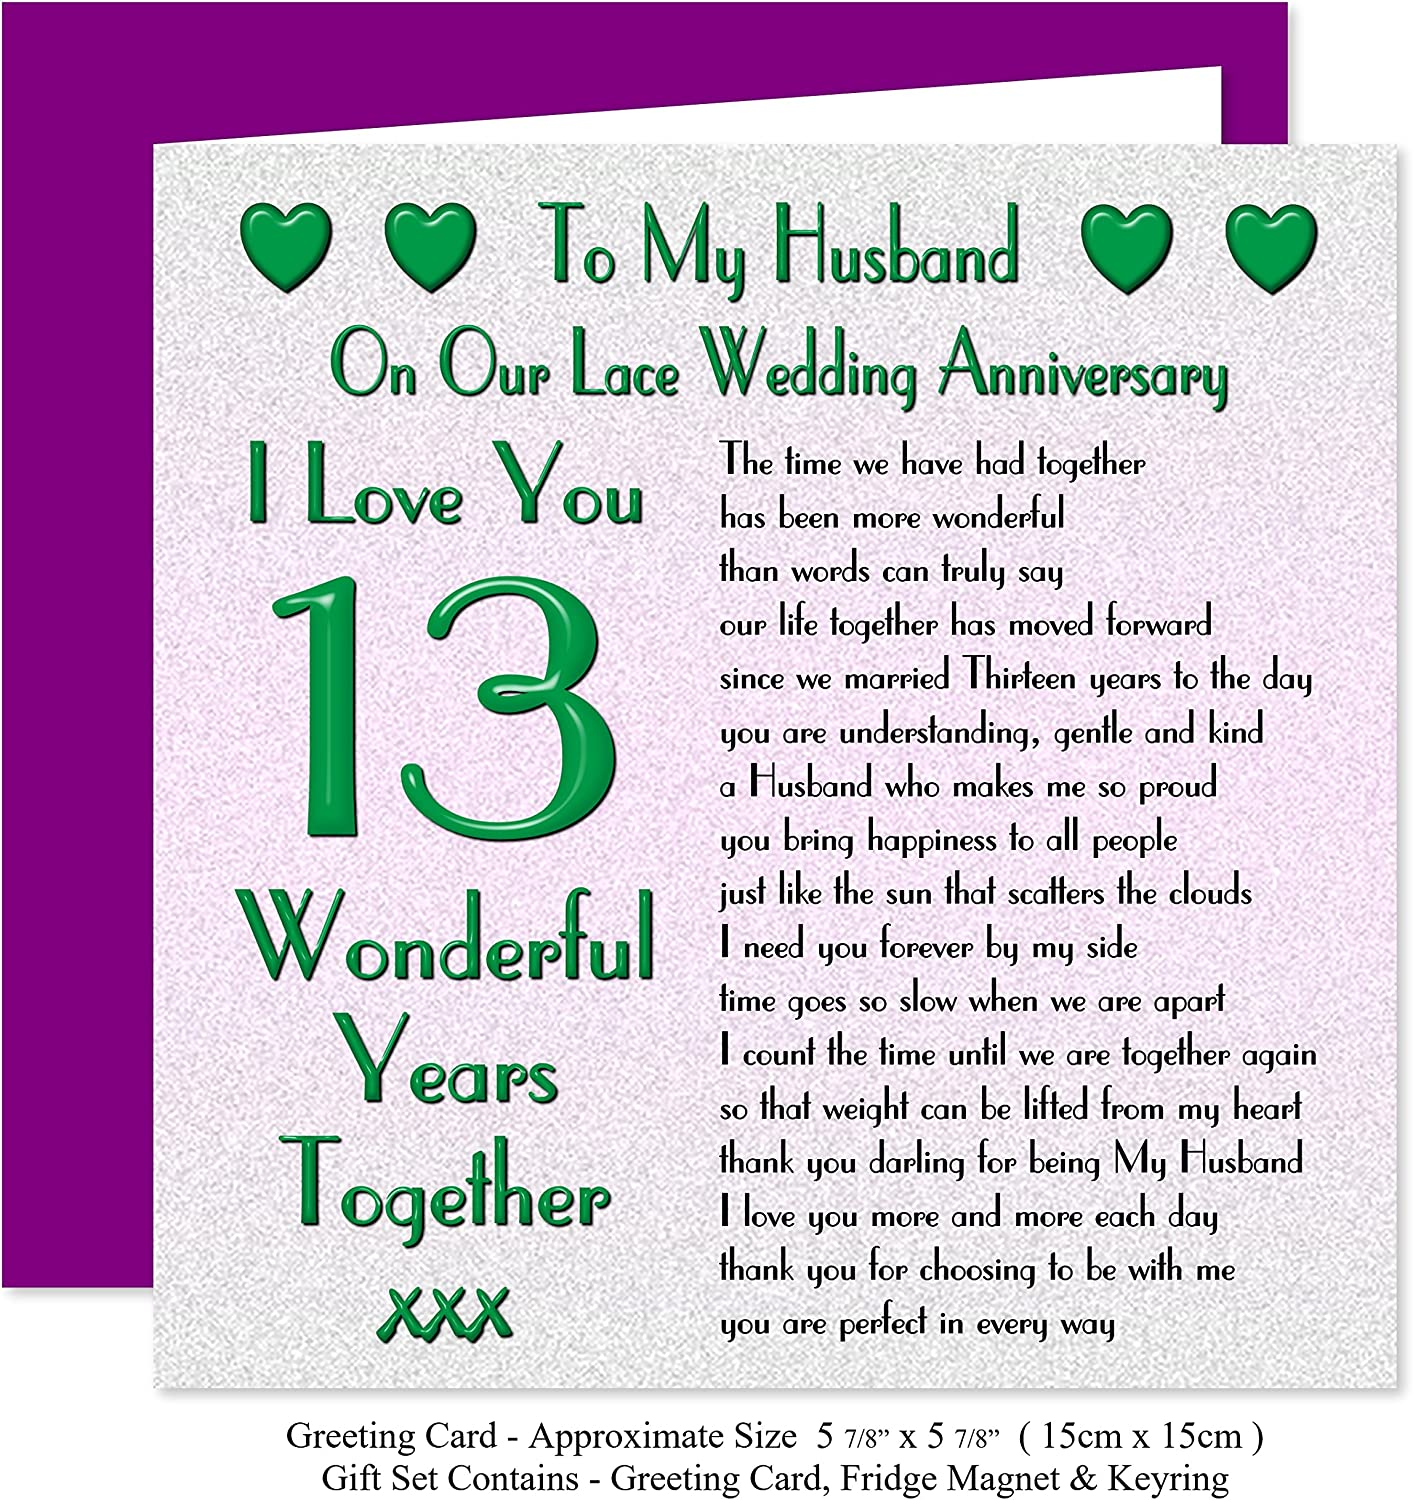 My Husband 13th Wedding Anniversary Gift Set Card Keyring Fridge Magnet Present On Our Lace Anniversary 13 Years Sentimental Verse I Love You Amazon Co Uk Office Products